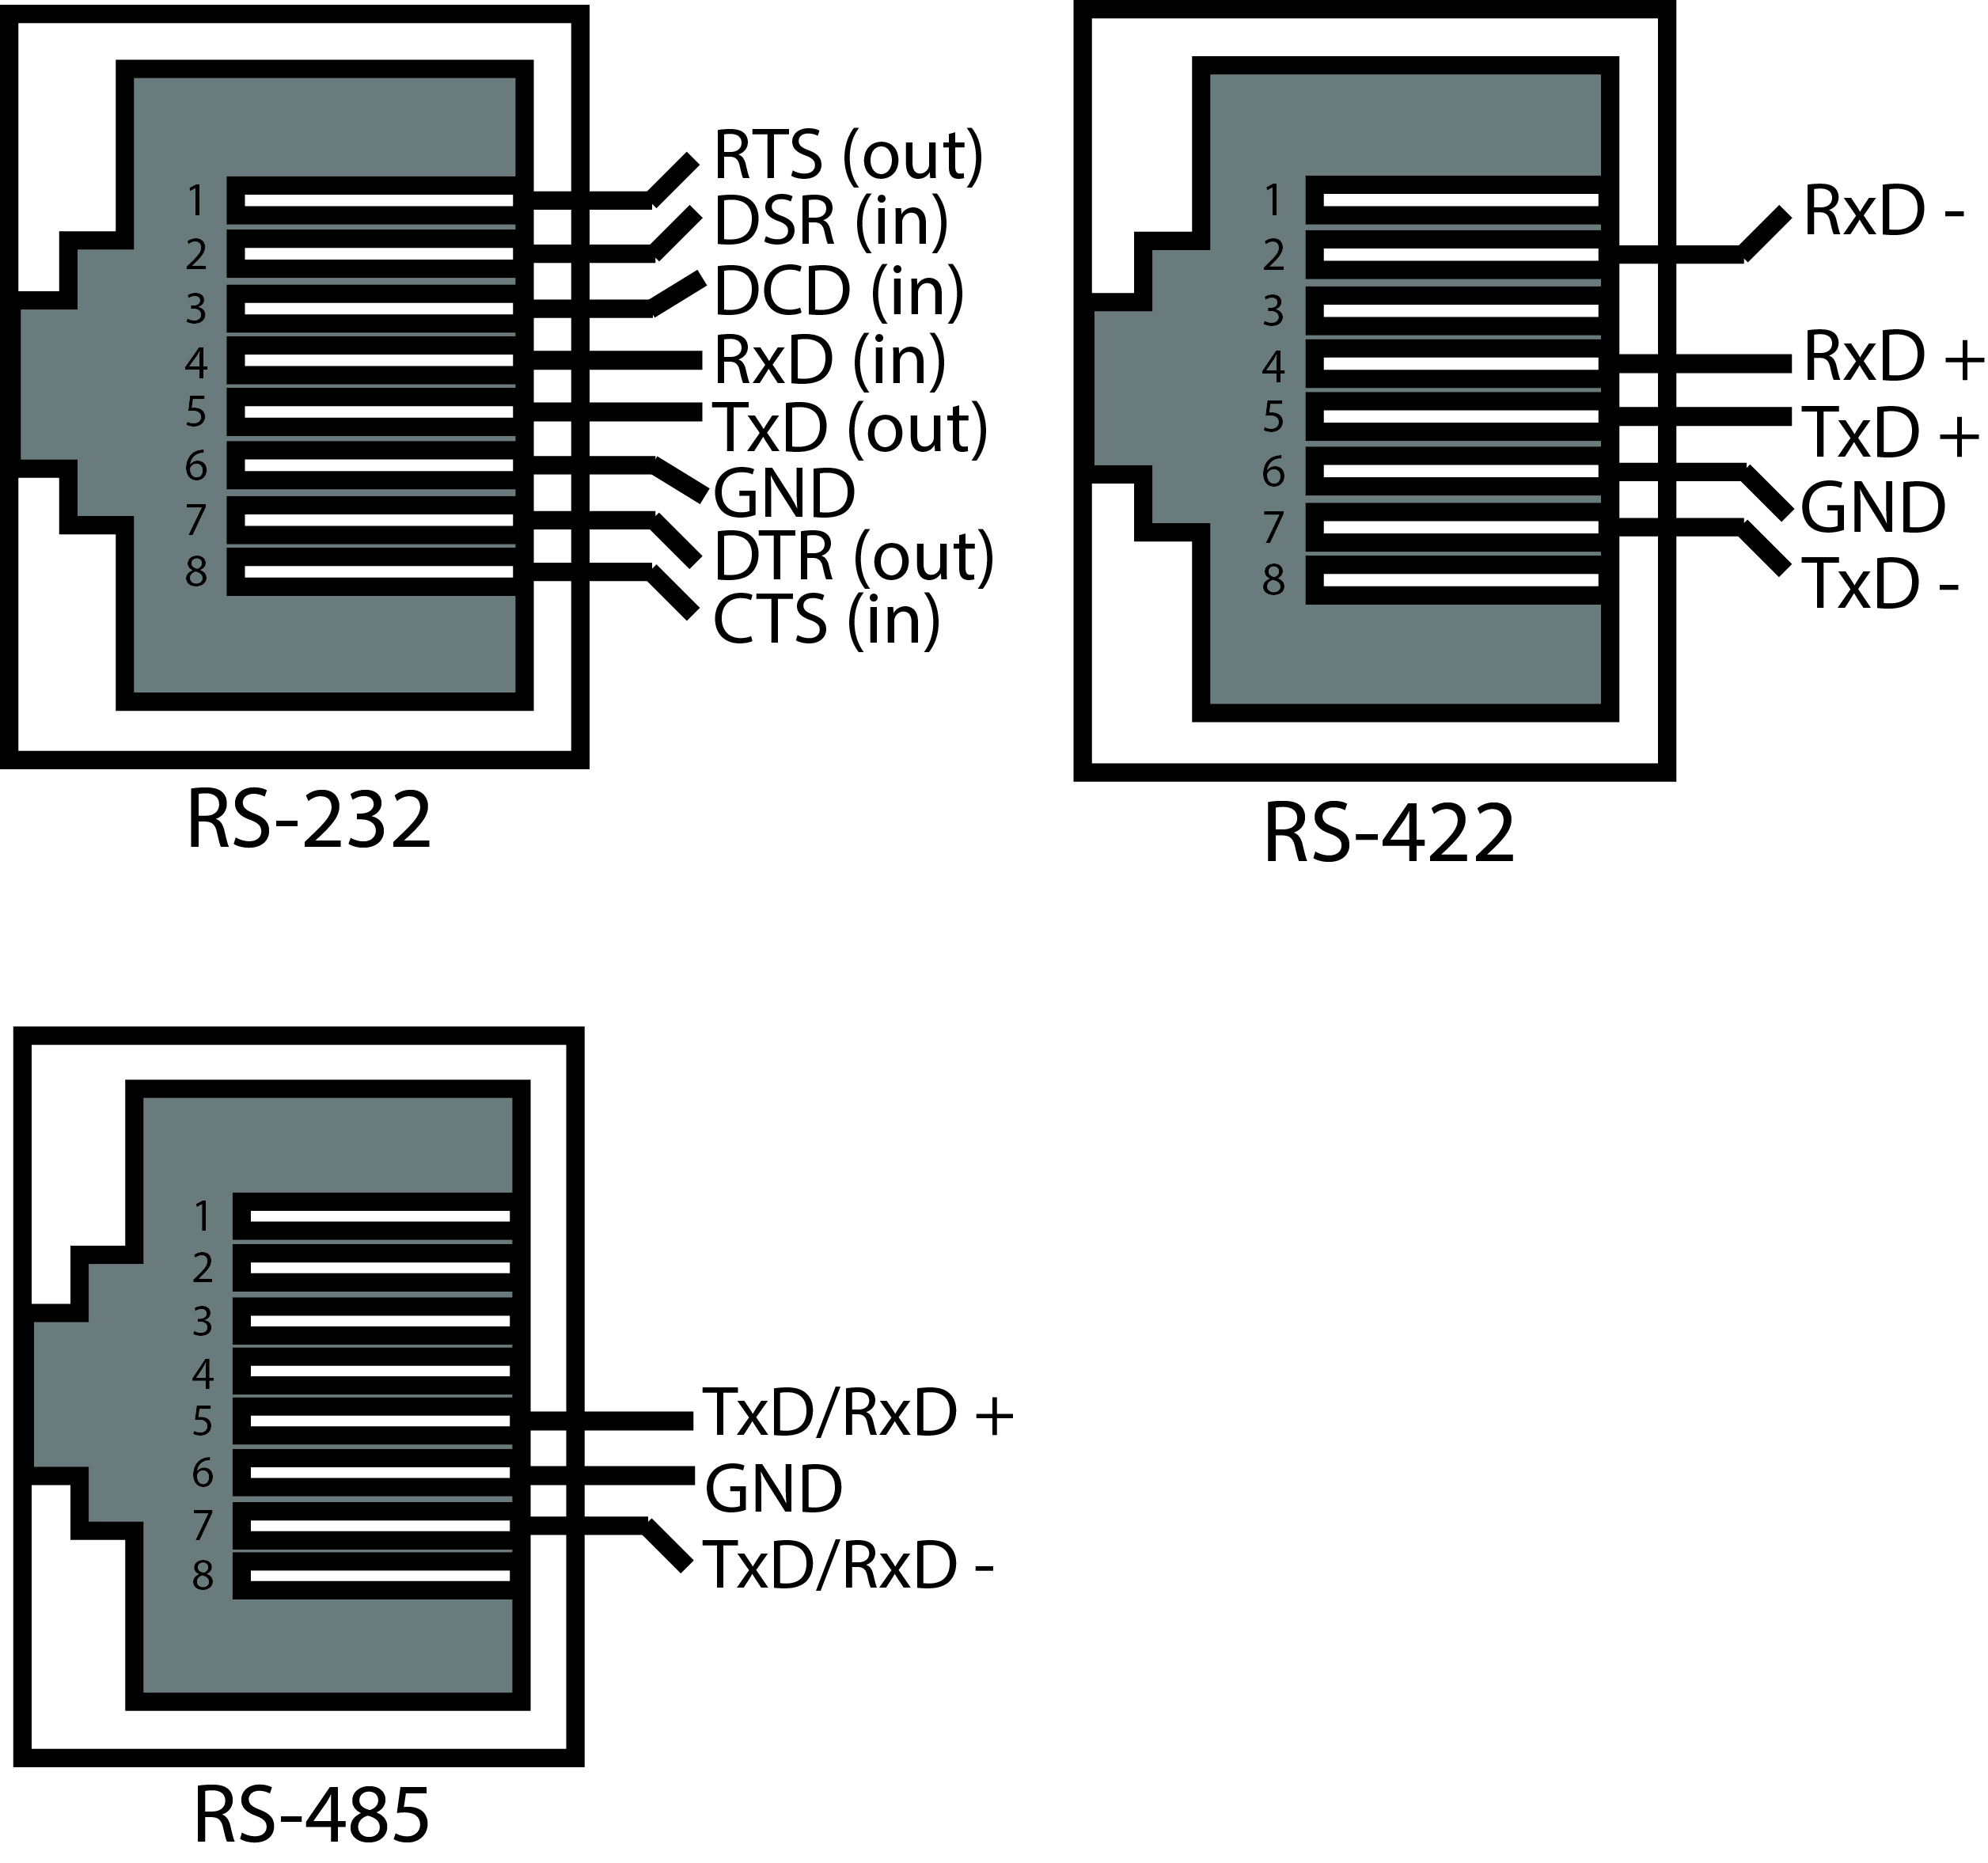 Rs485 To Usb Wiring Diagram Libraries Cable For Connecting Rs 485 Rj45 Diagrams Imgcomtrol 99581 4 Express Systems U0026 Peripherals